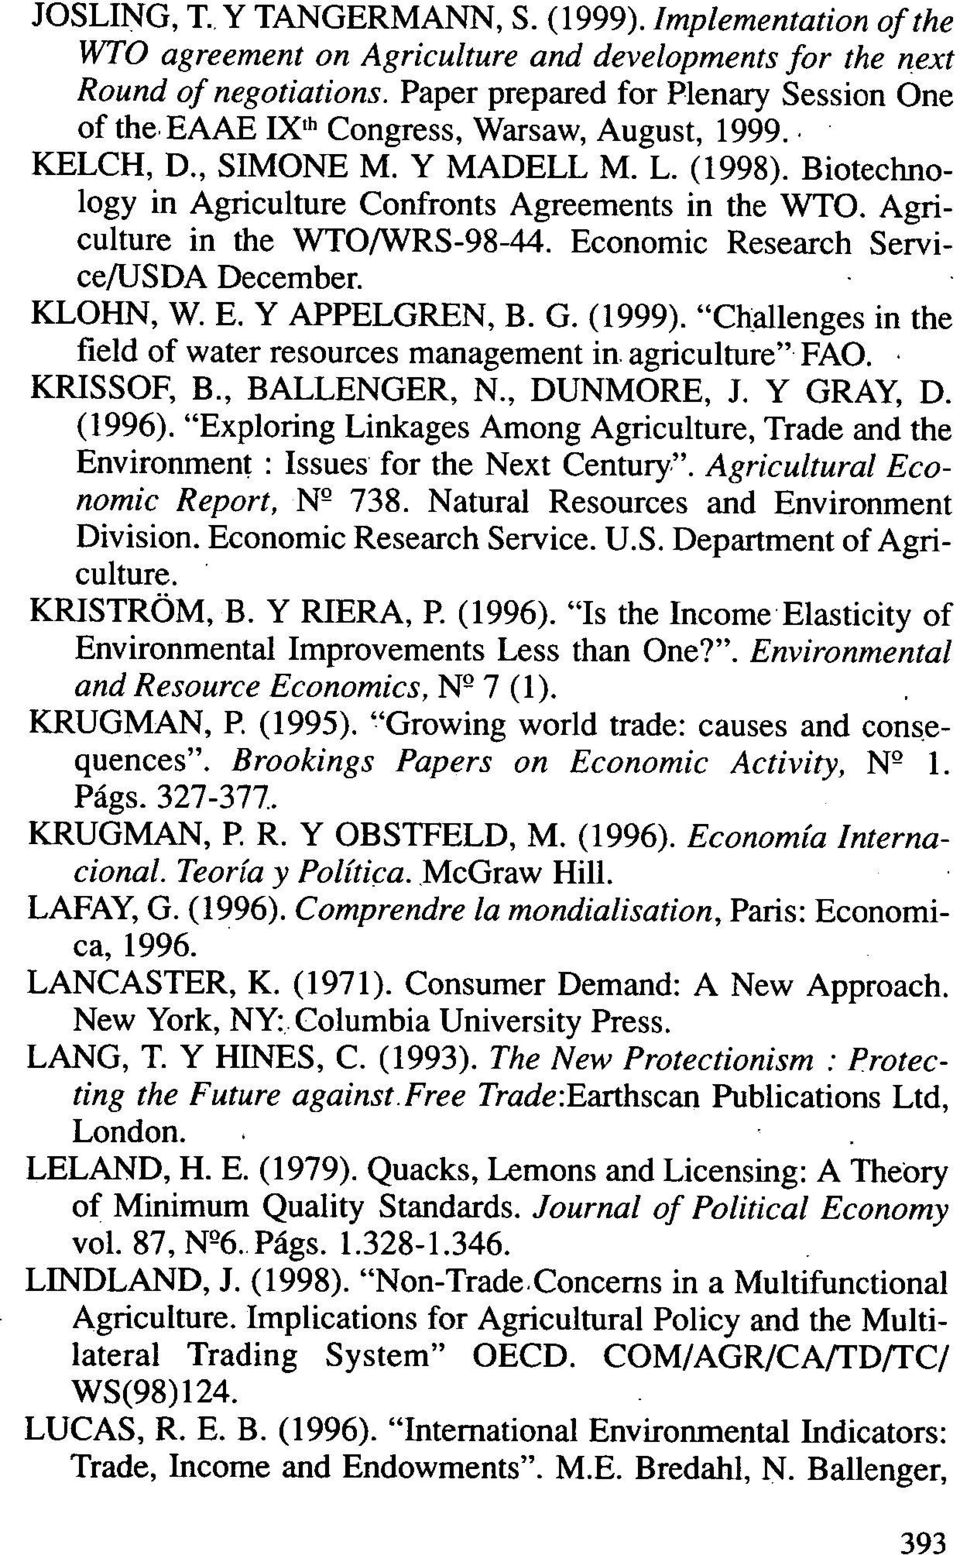 "Agriculture in the WTO/WRS-98-44. Economic Research Service/USDA December. ^ KLOHN, W. E. Y APPELGREN, B. G. (1999). ""Ch:allenges in the field of water resources management in. agriculture"" FAO."